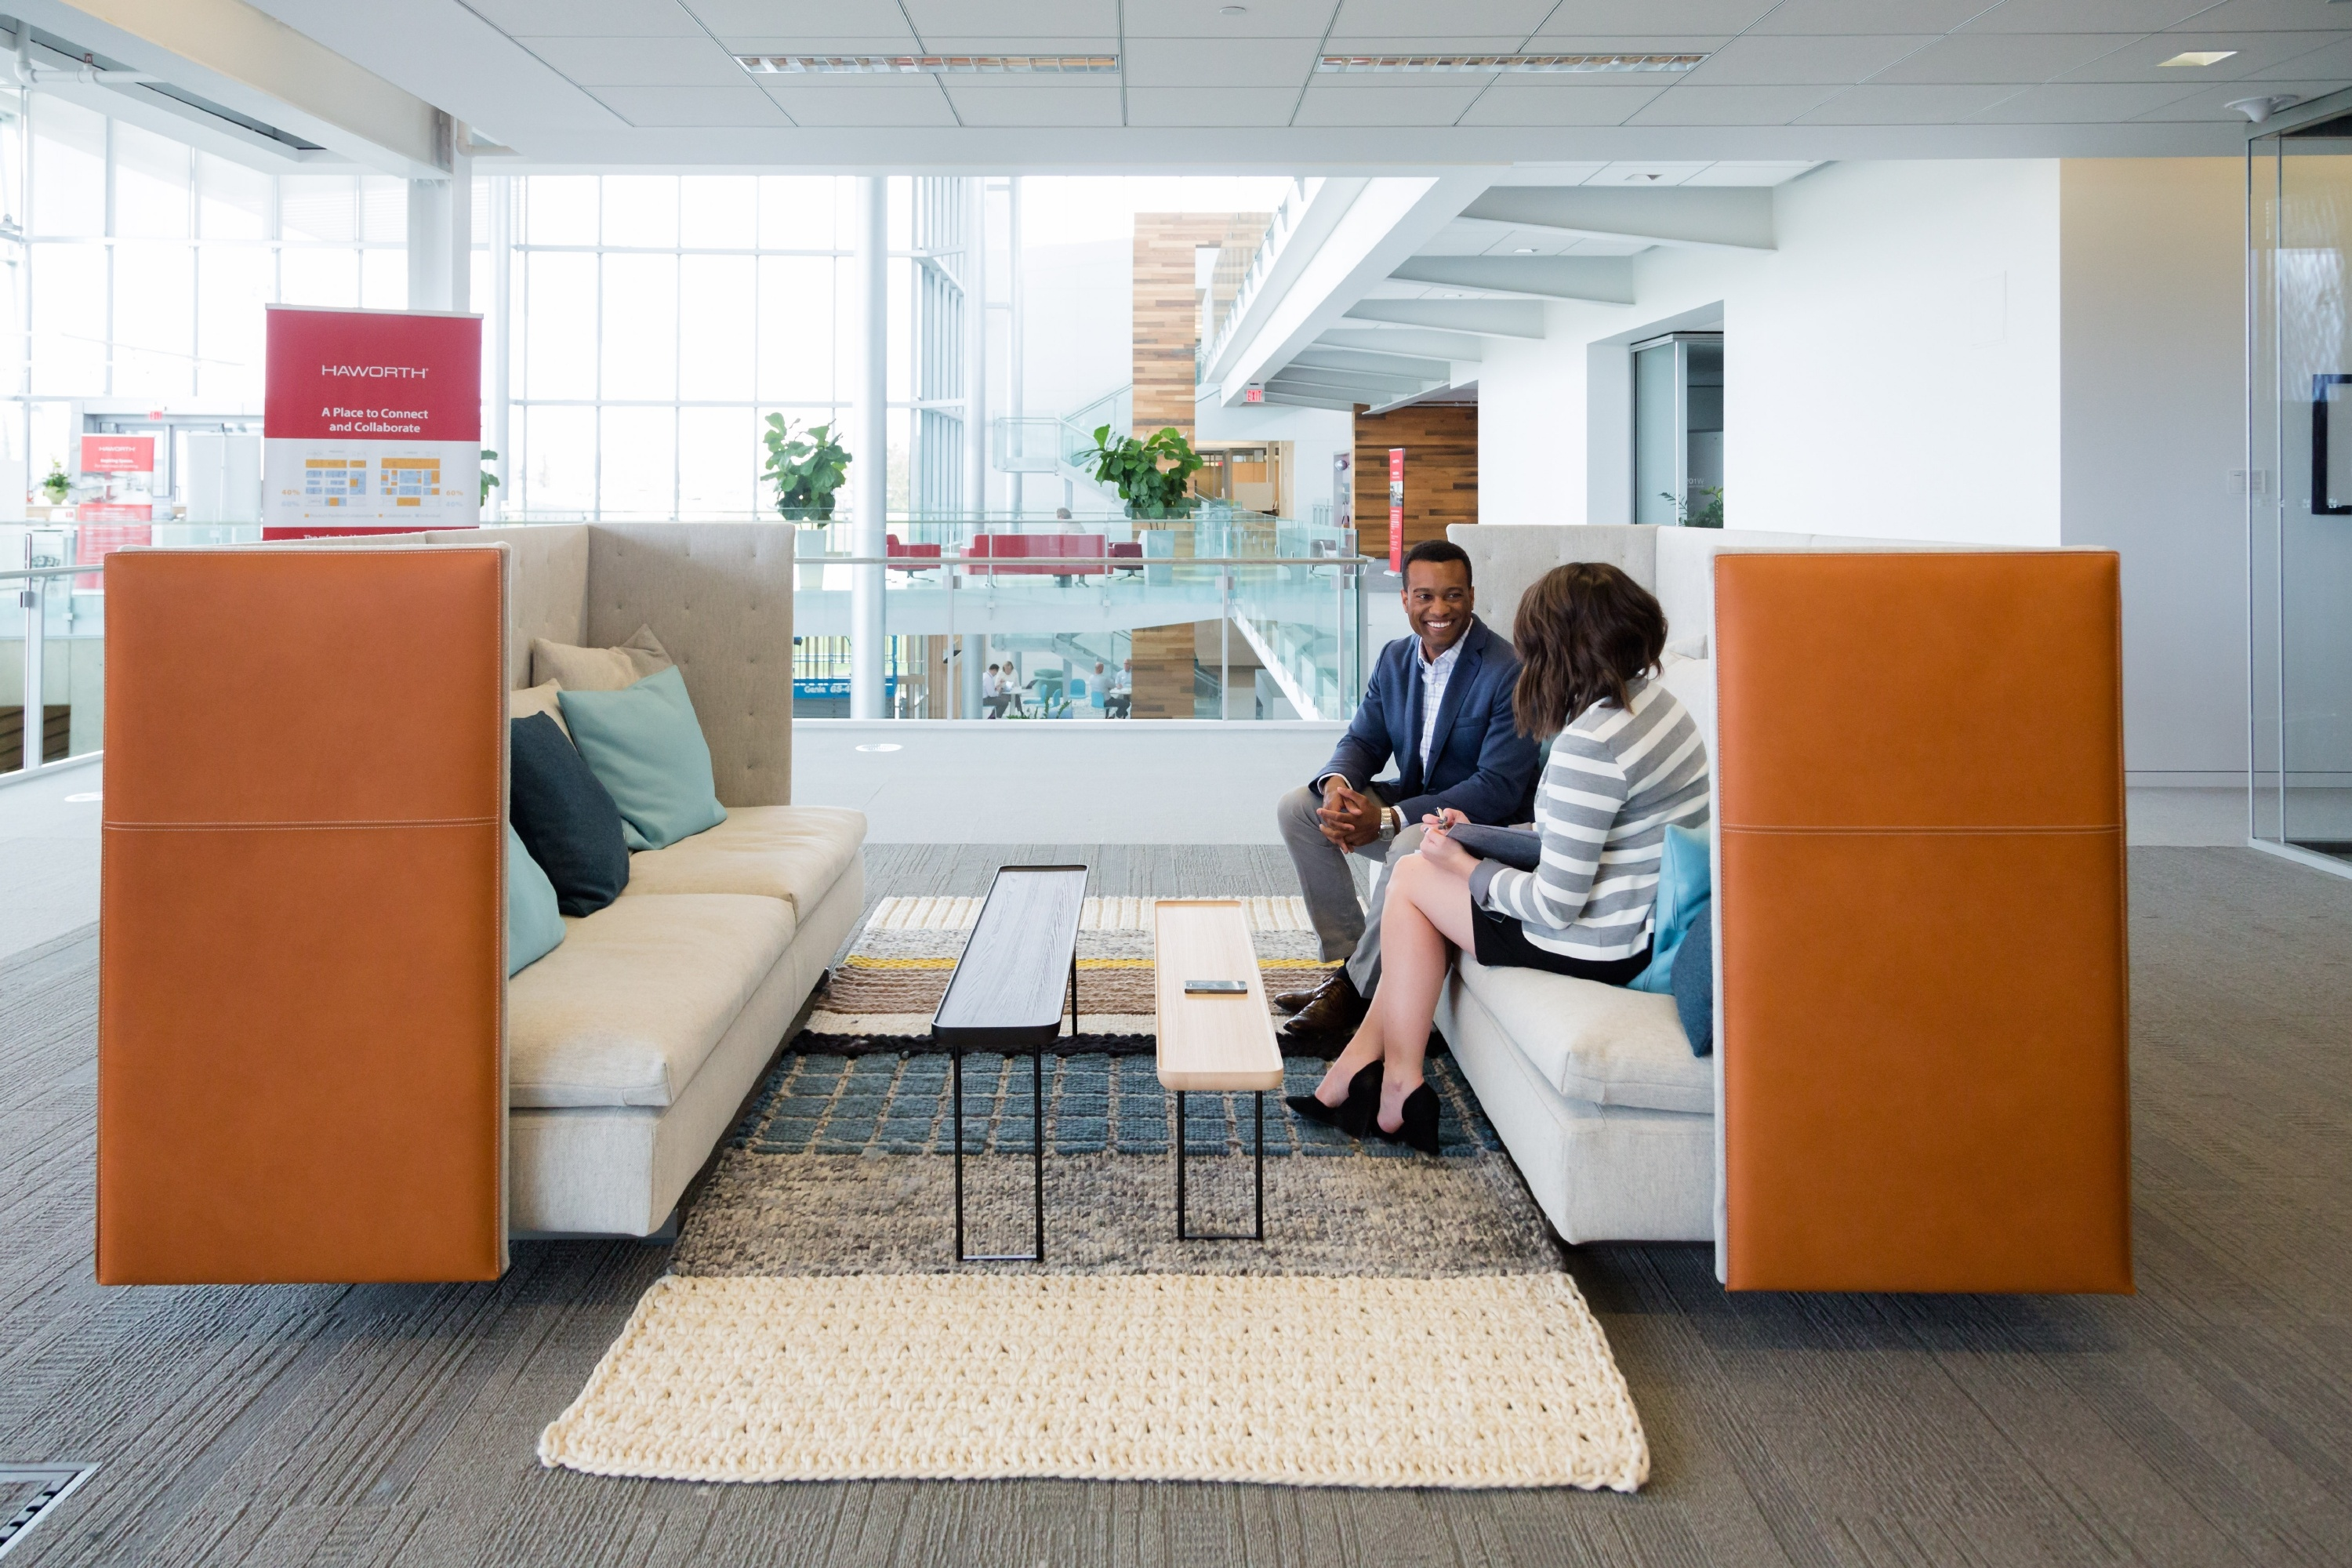 5 Reasons Workplace Design is a Powerful Recruiting Tool